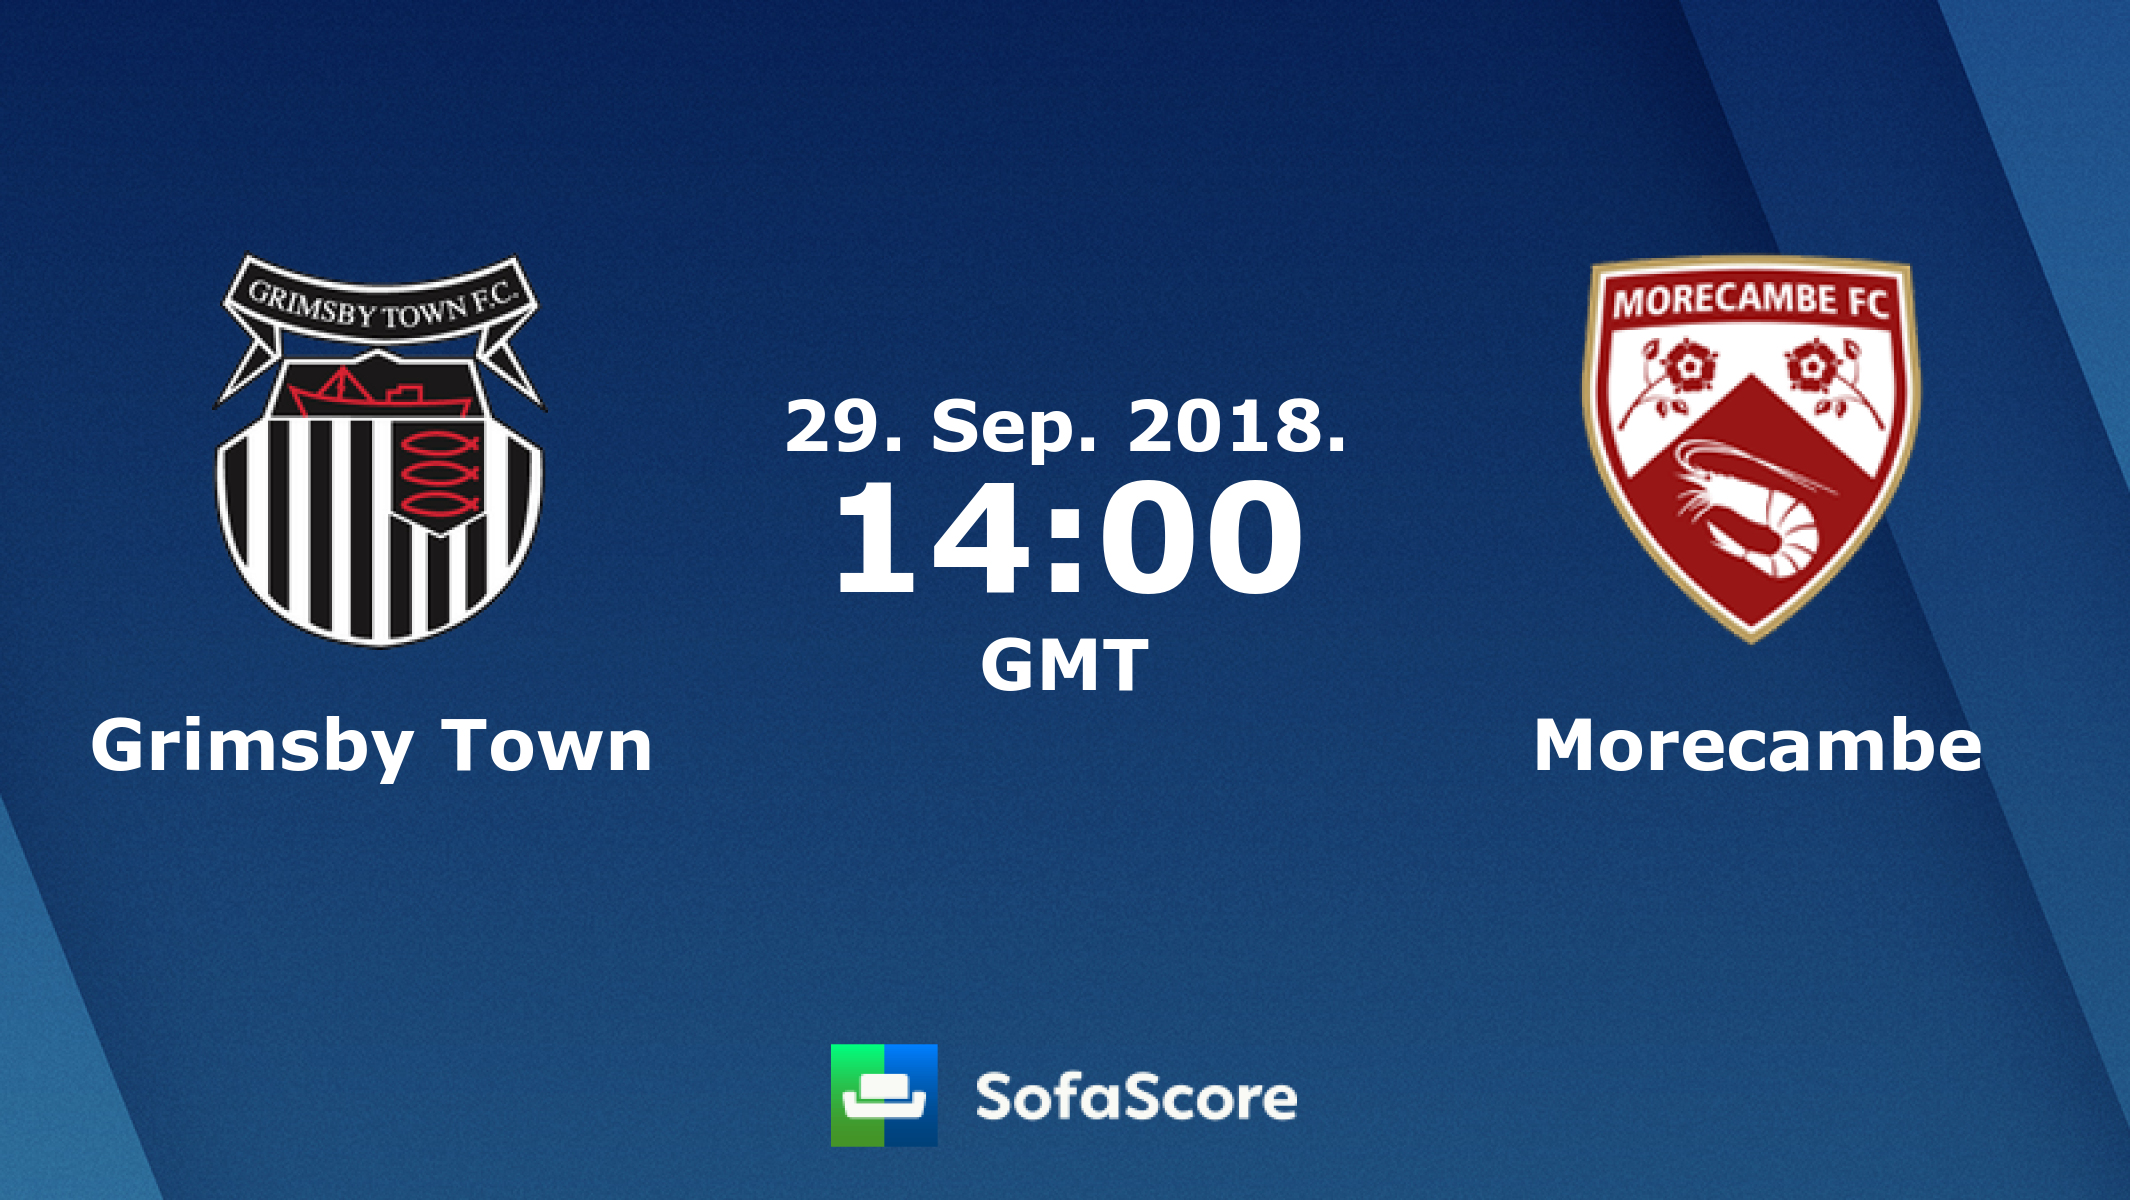 Grimsby Town Morecambe Fc Live Score Video Stream And H2h